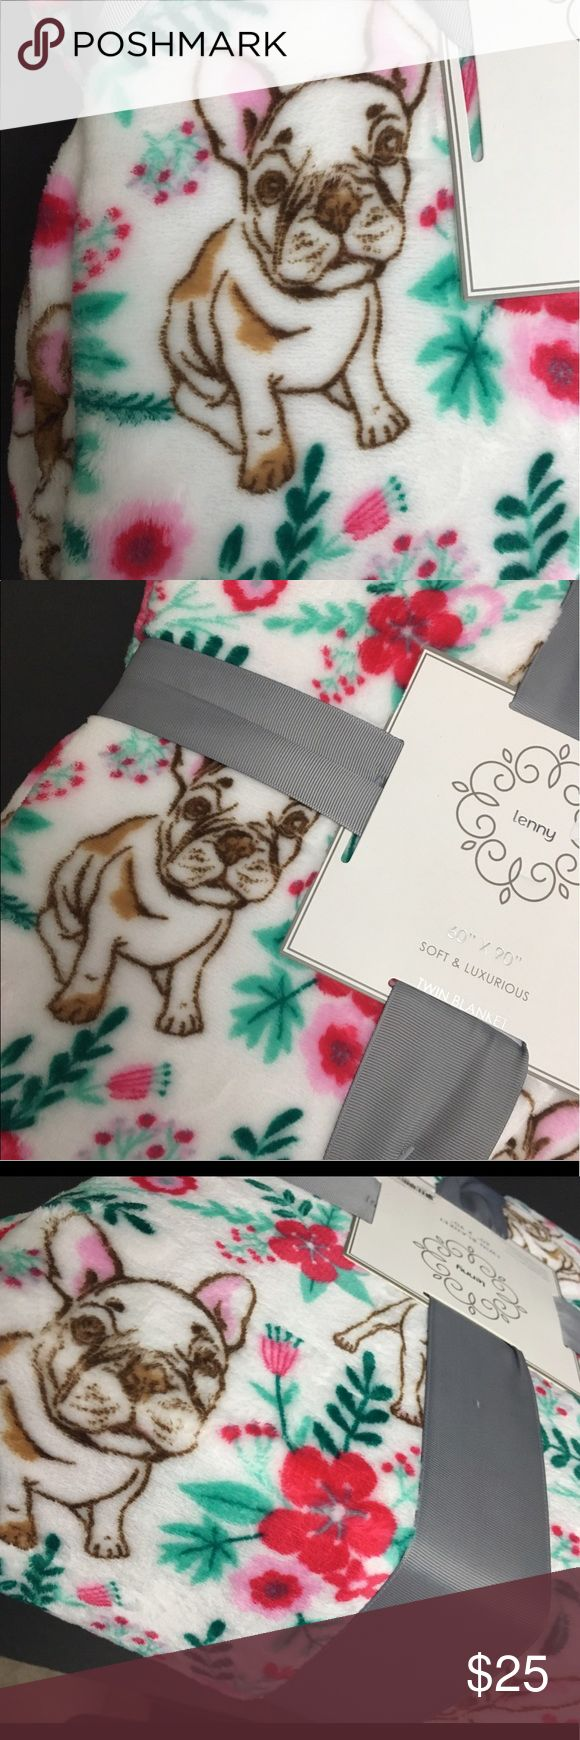 "French bulldog puppy floral plush blanket throw 60x90"" ultra plush super soft blanket. White with red green floral print and brown French bulldog outline puppy pattern. Super cute and comfy. Pet animal Other"